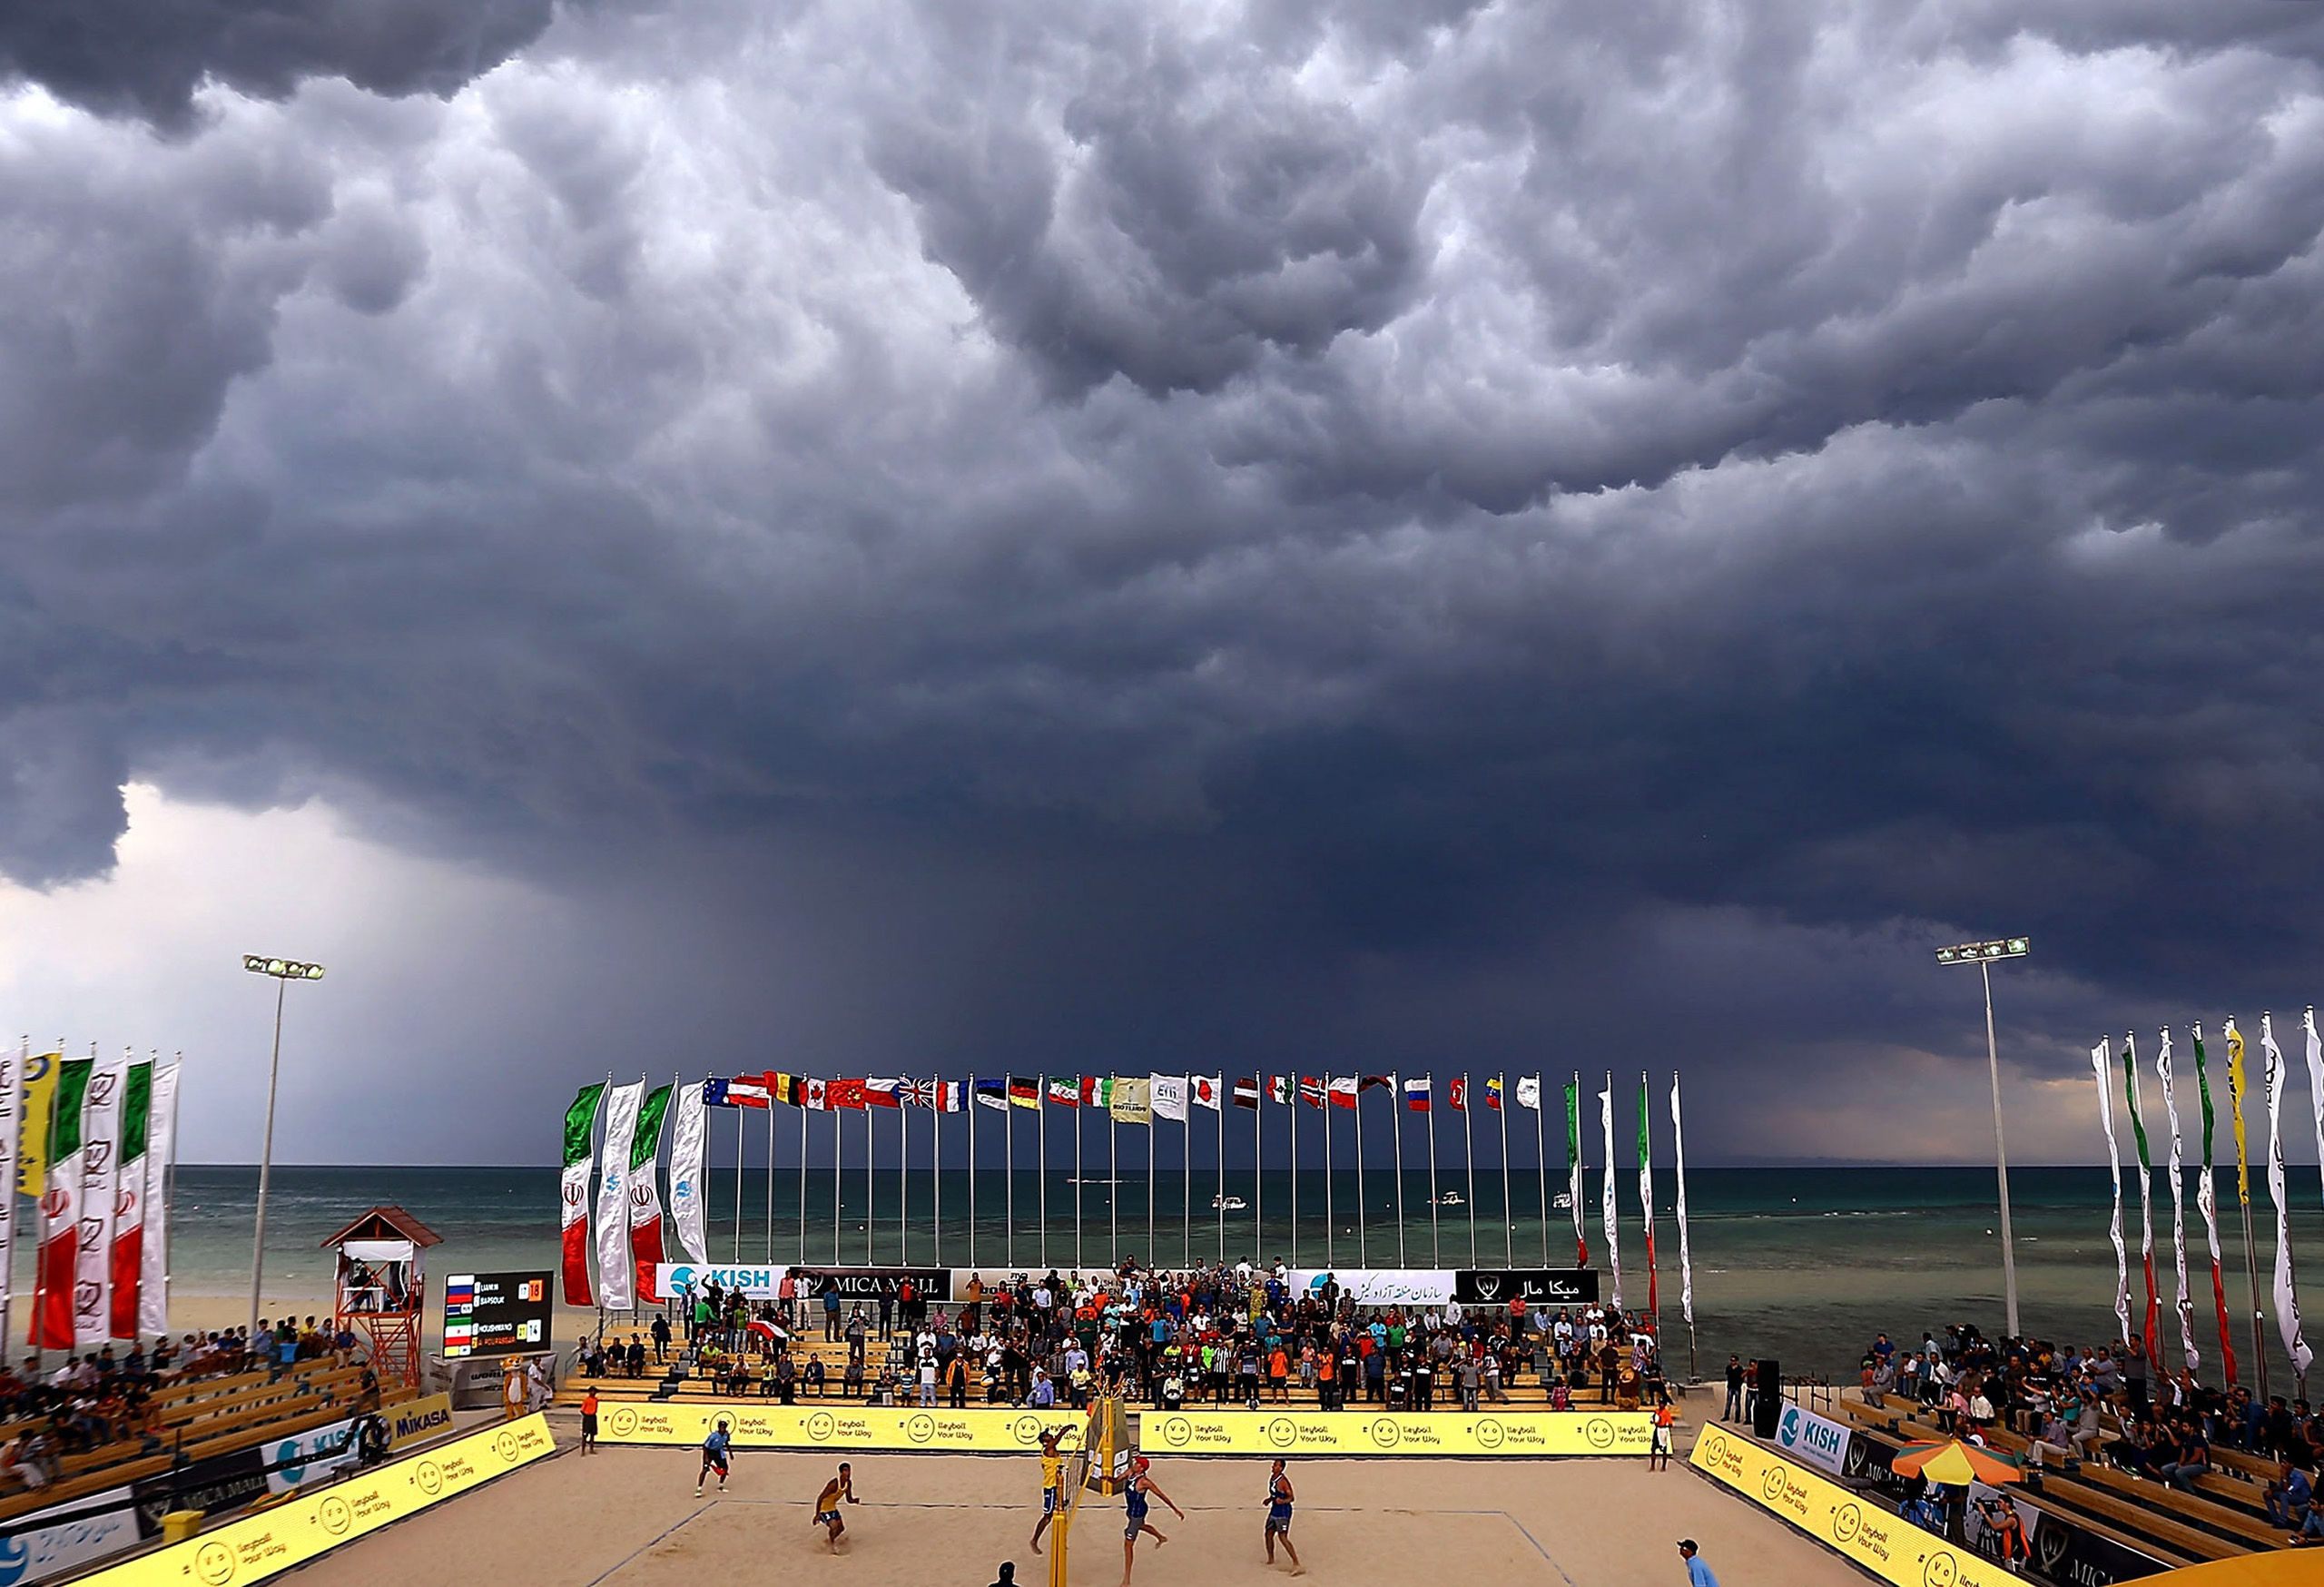 A general view of court action as the weather closes in on day 3 of the FIVB Kish Island in Iran on Feb. 17, 2016.